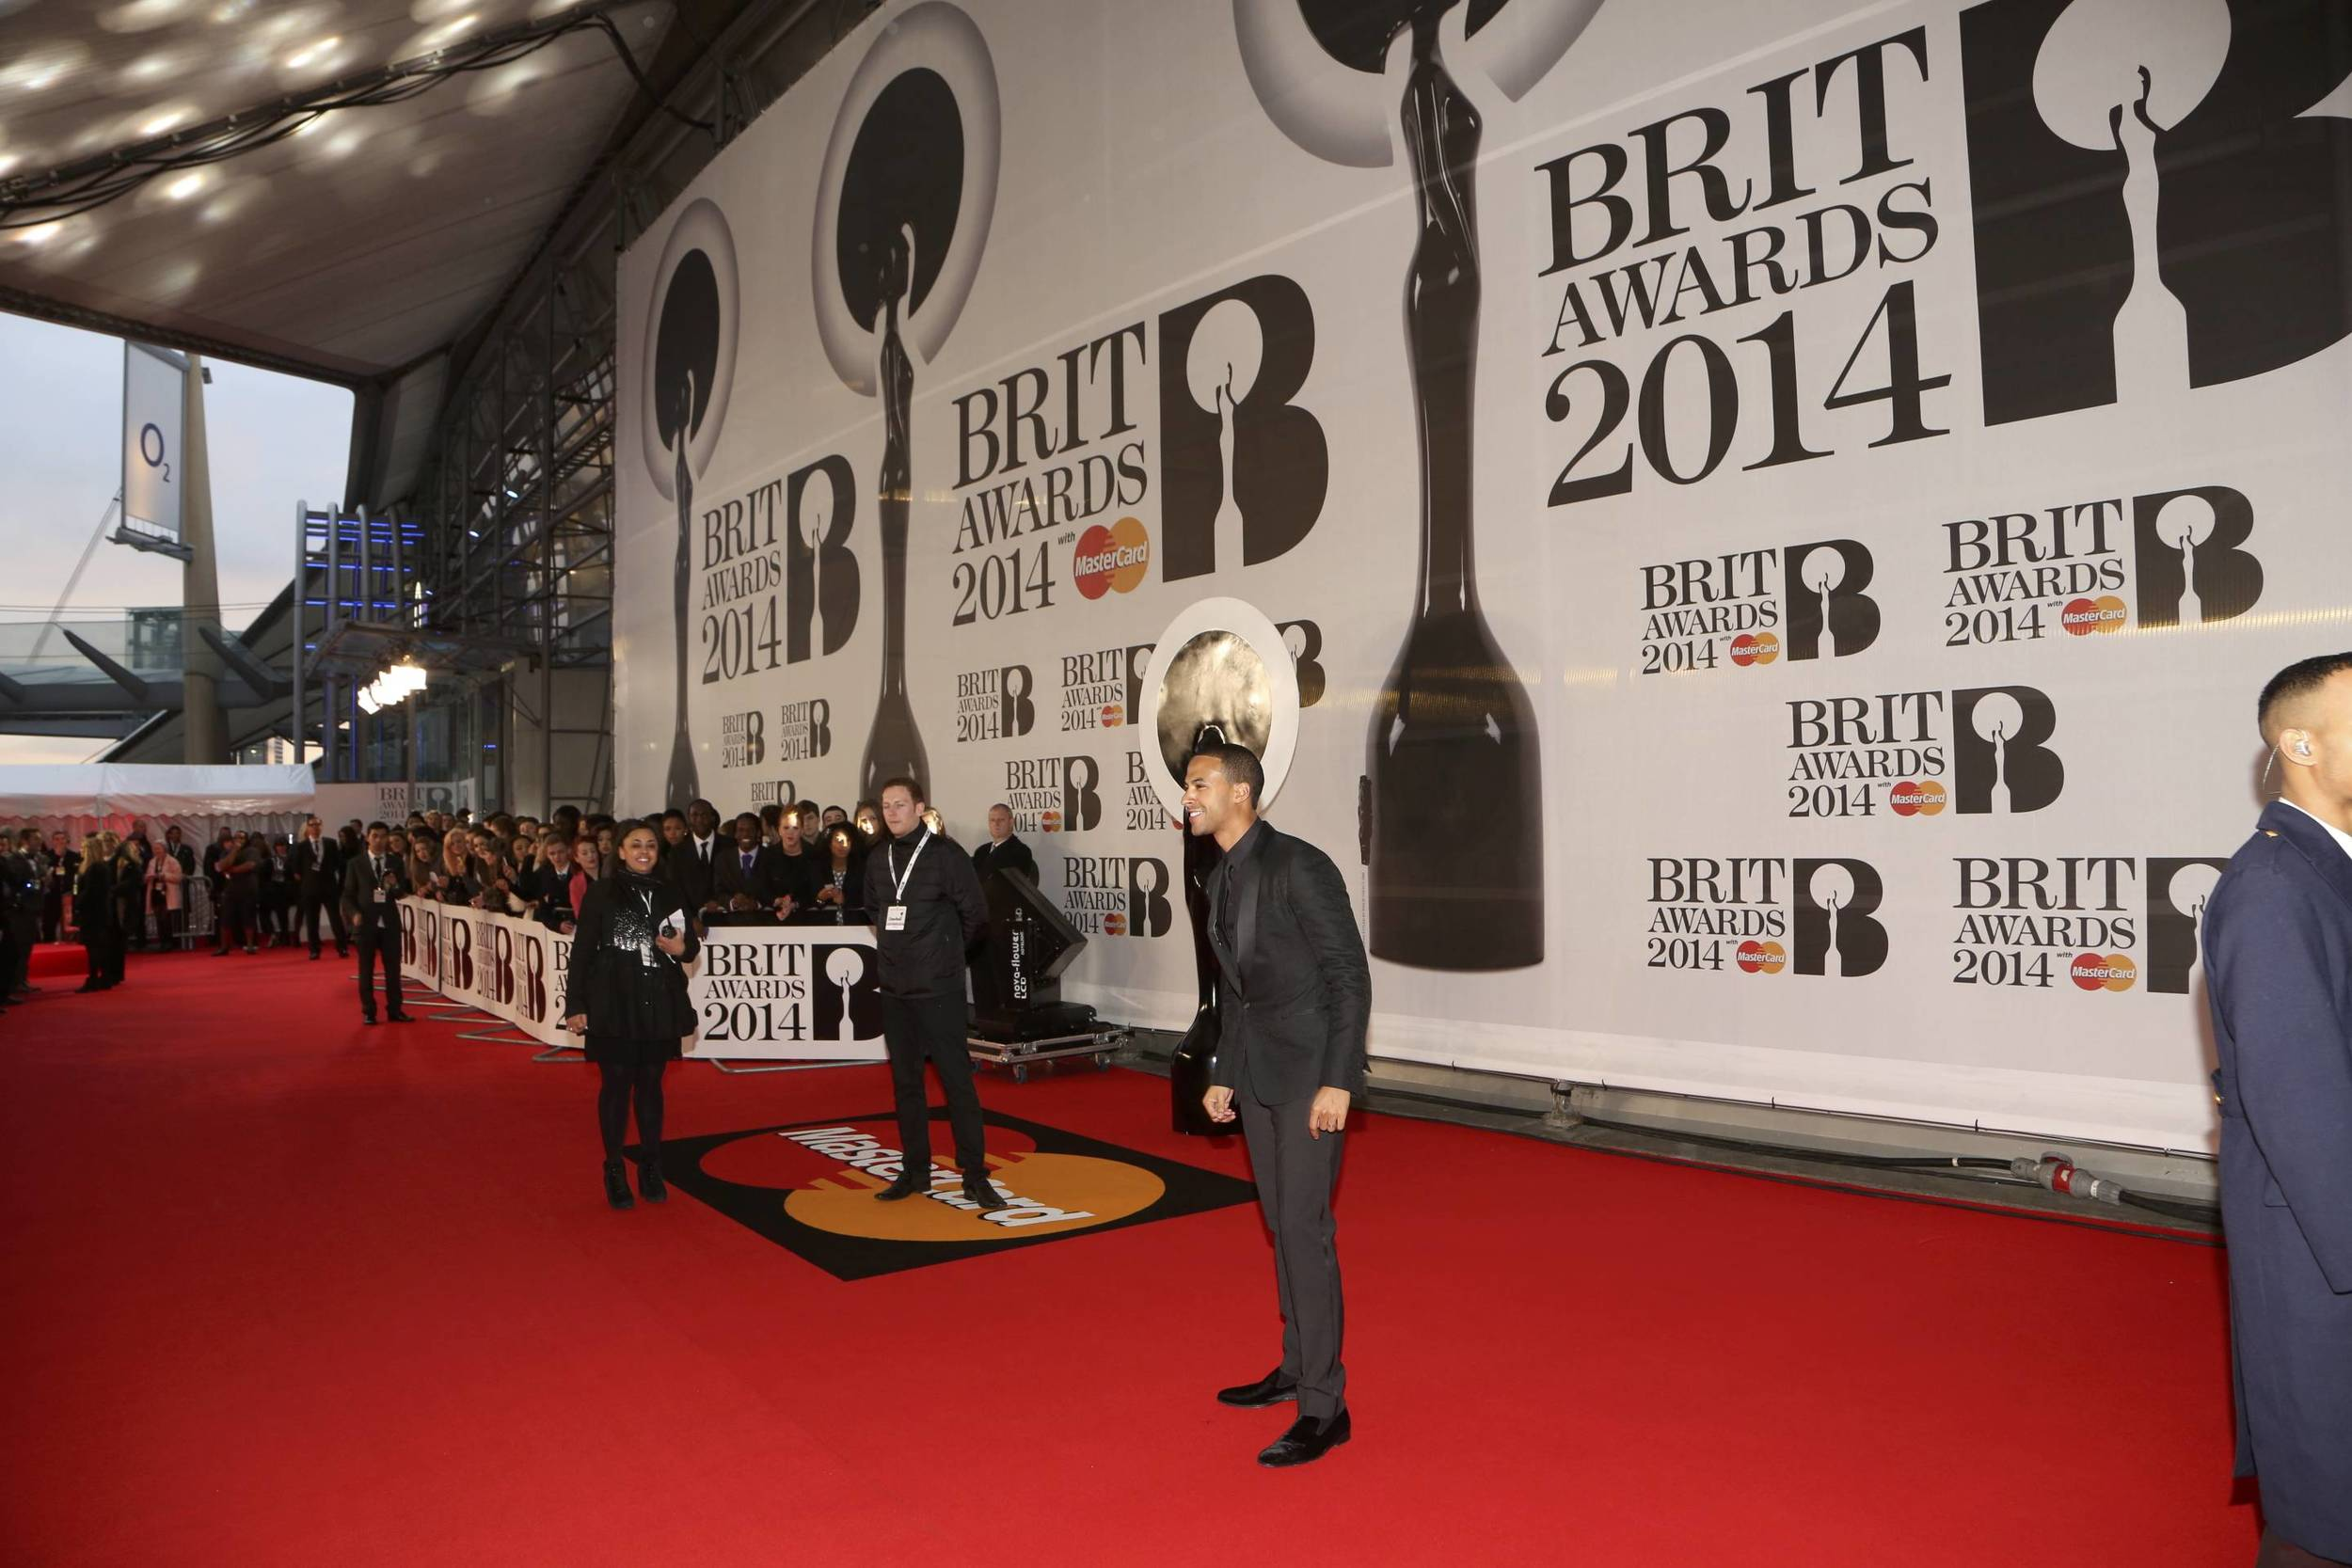 The BRIT Awards 2014 Red Carpet